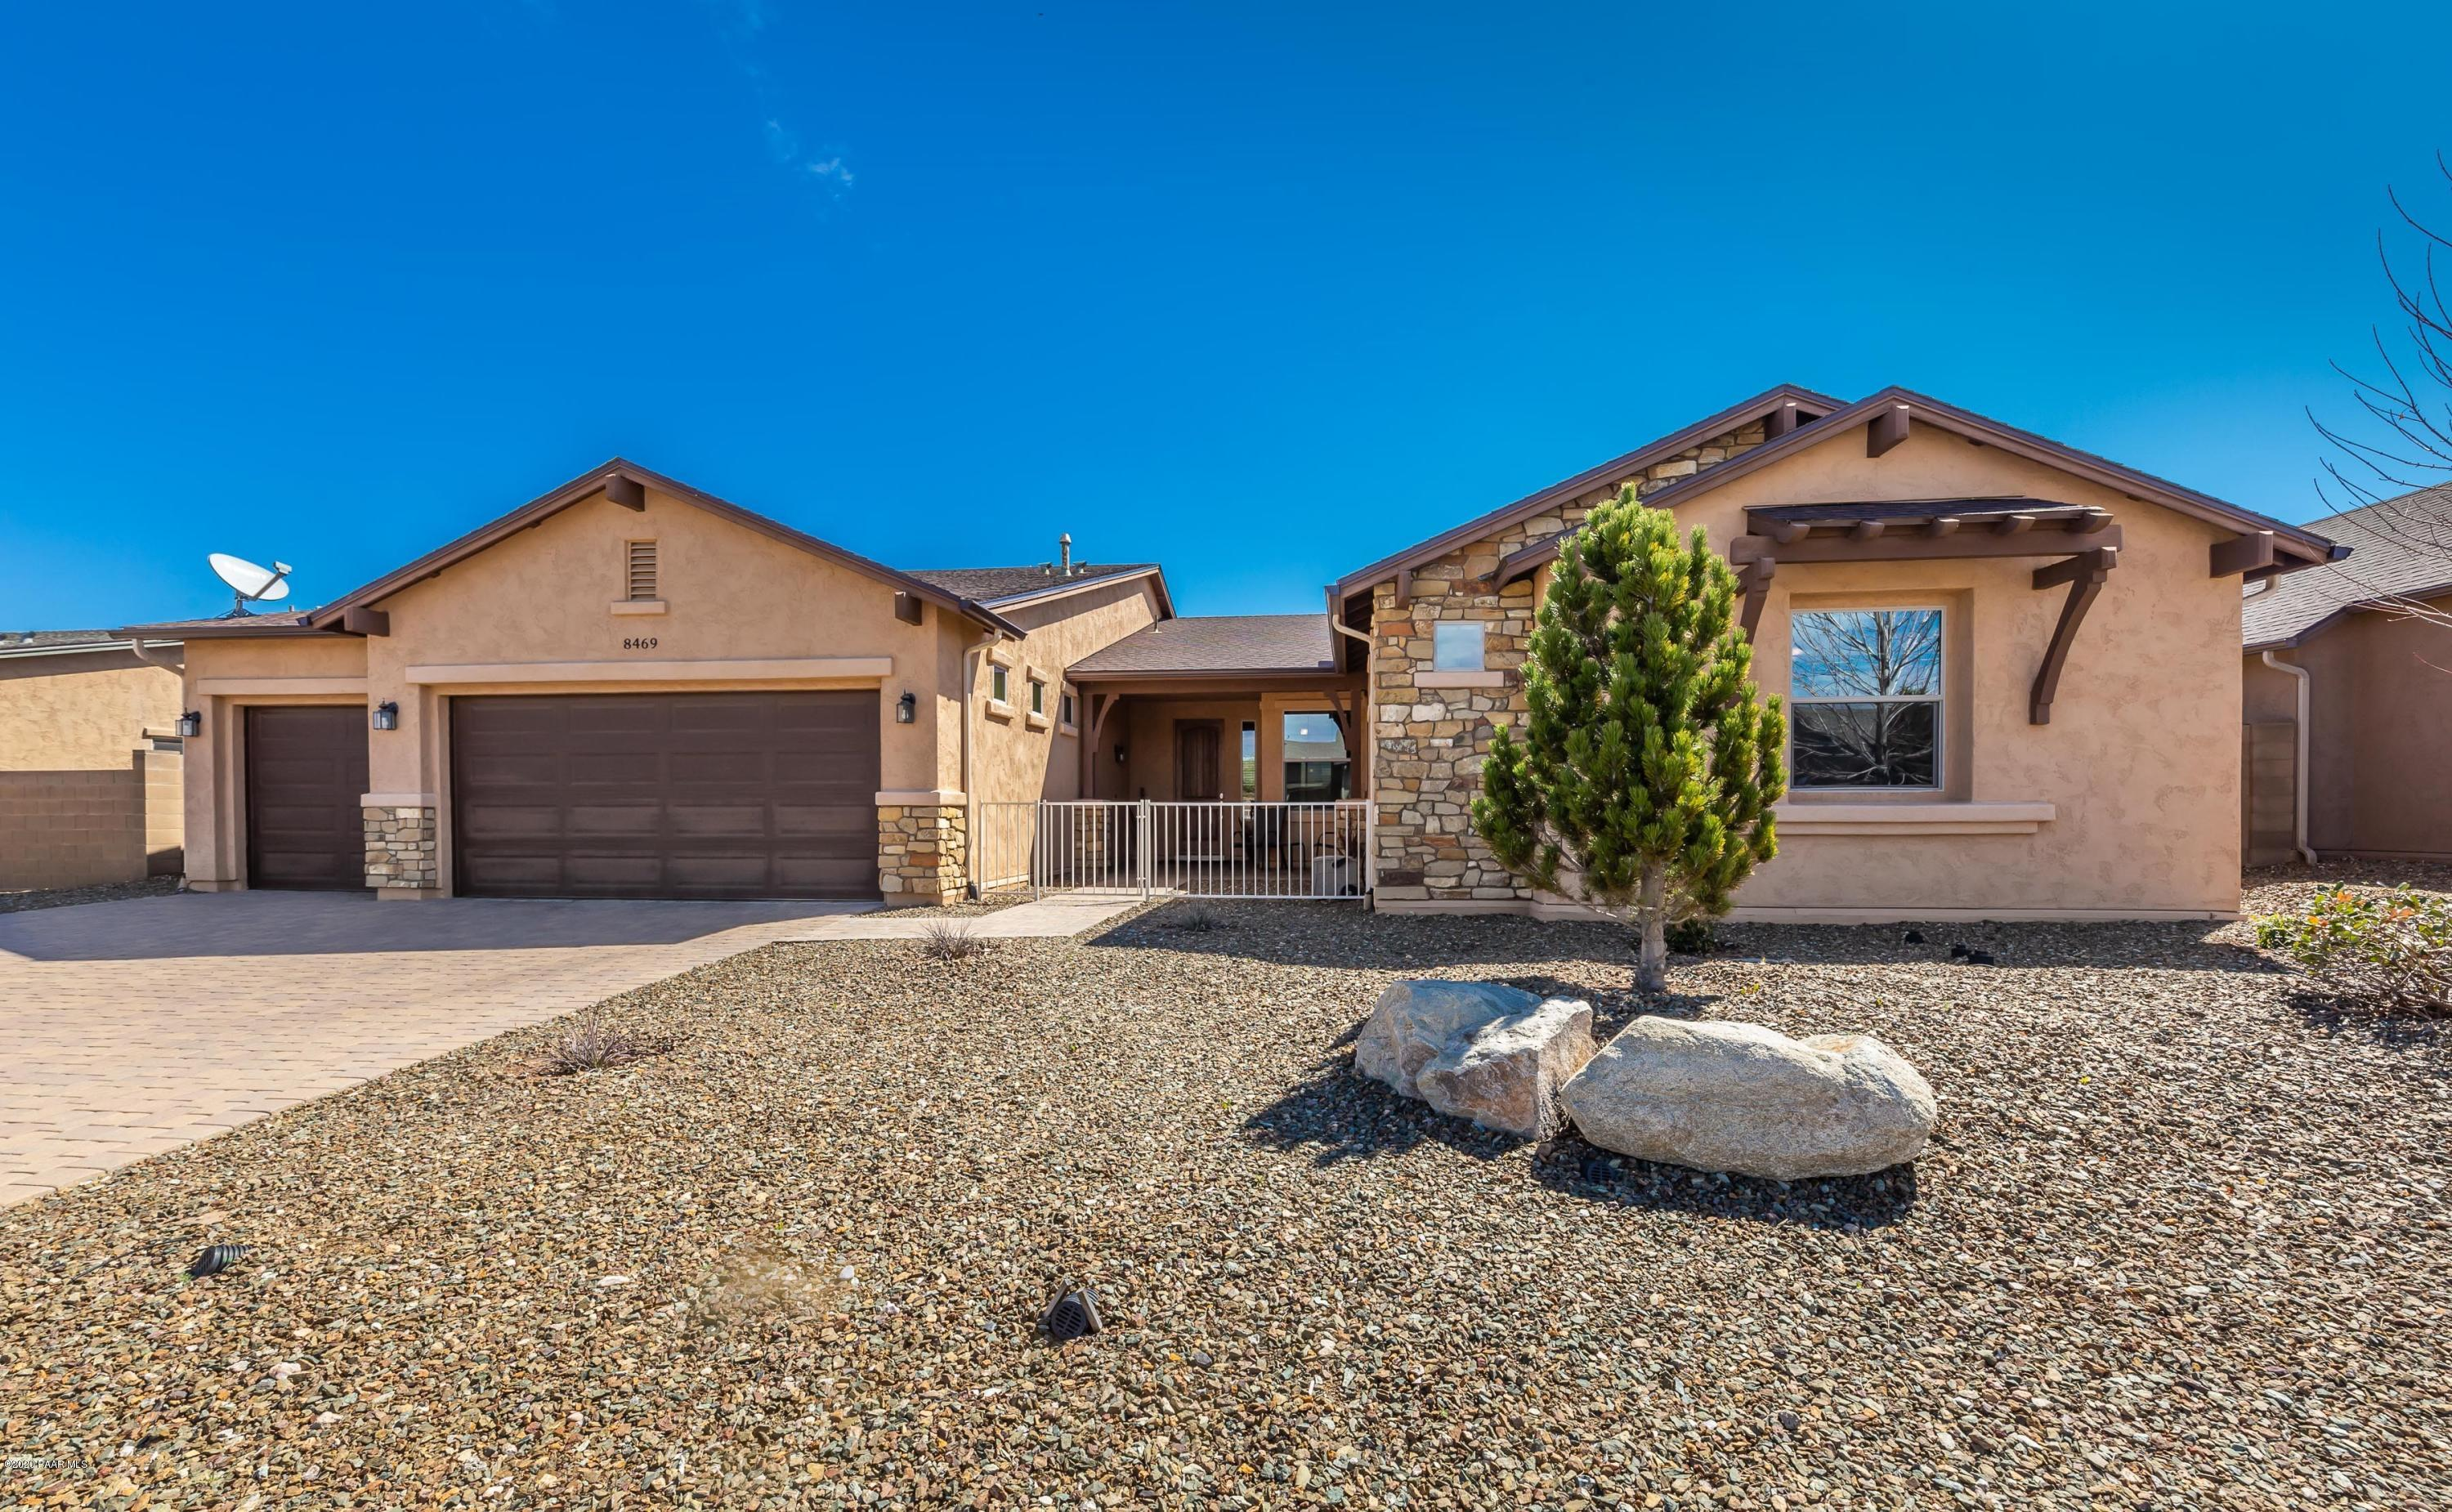 Photo of 8469 Pepperbox, Prescott Valley, AZ 86315